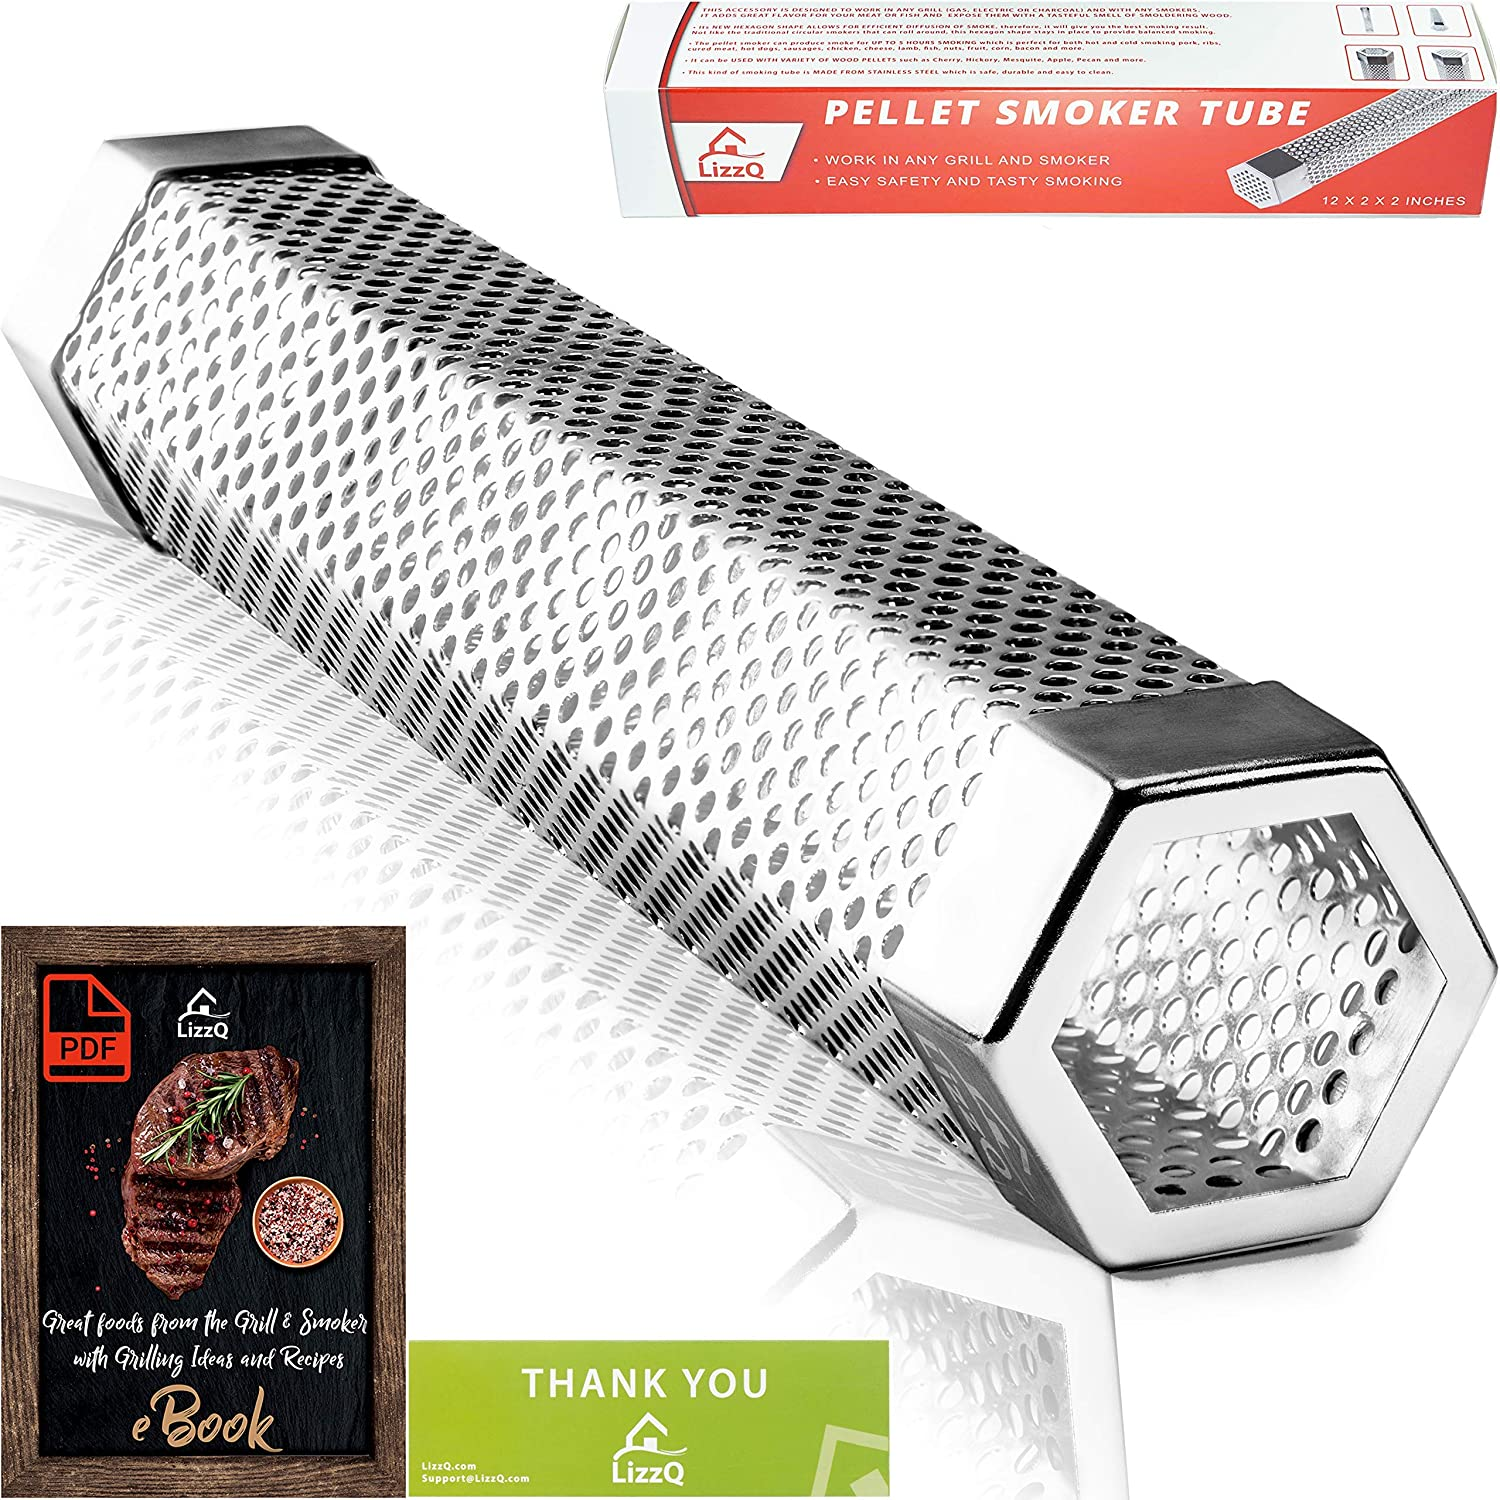 LIZZQ Premium Pellet Smoker Tube 12 inches - 5 Hours of Billowing Smoke - for Any Grill or Smoker, Hot or Cold Smoking - Easy, Safety and Tasty ...